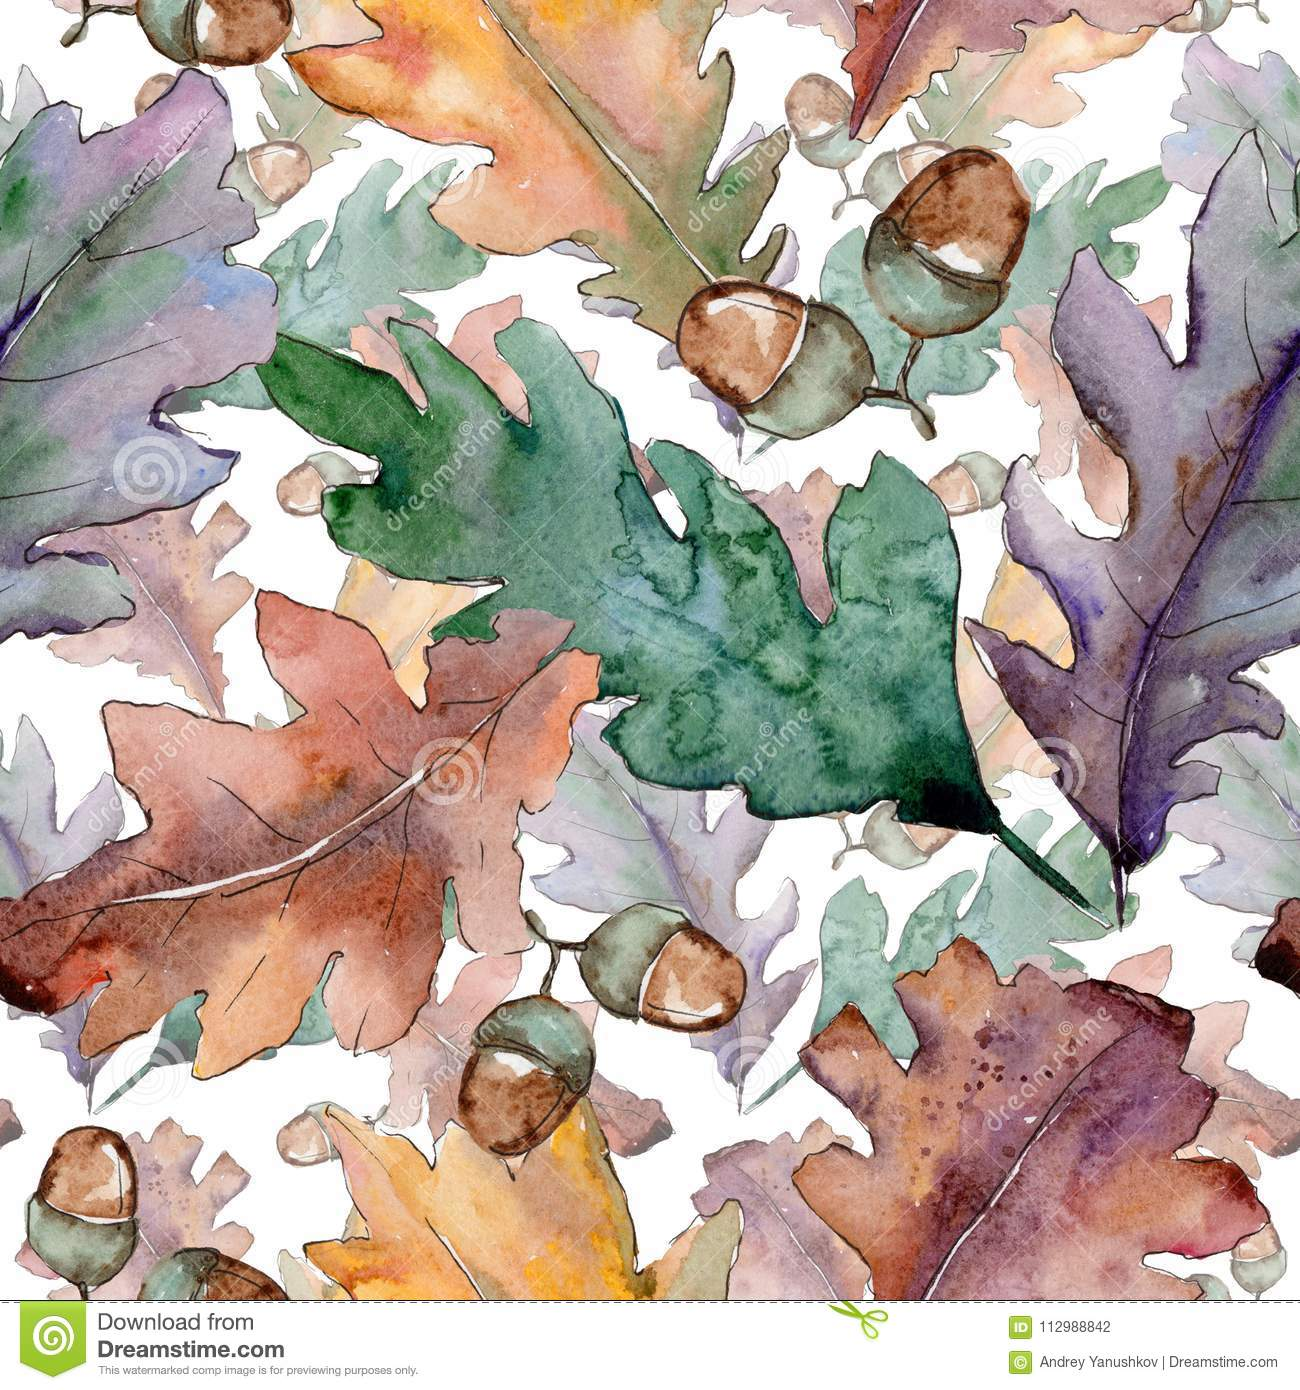 Oak leaves pattern in a watercolor style.